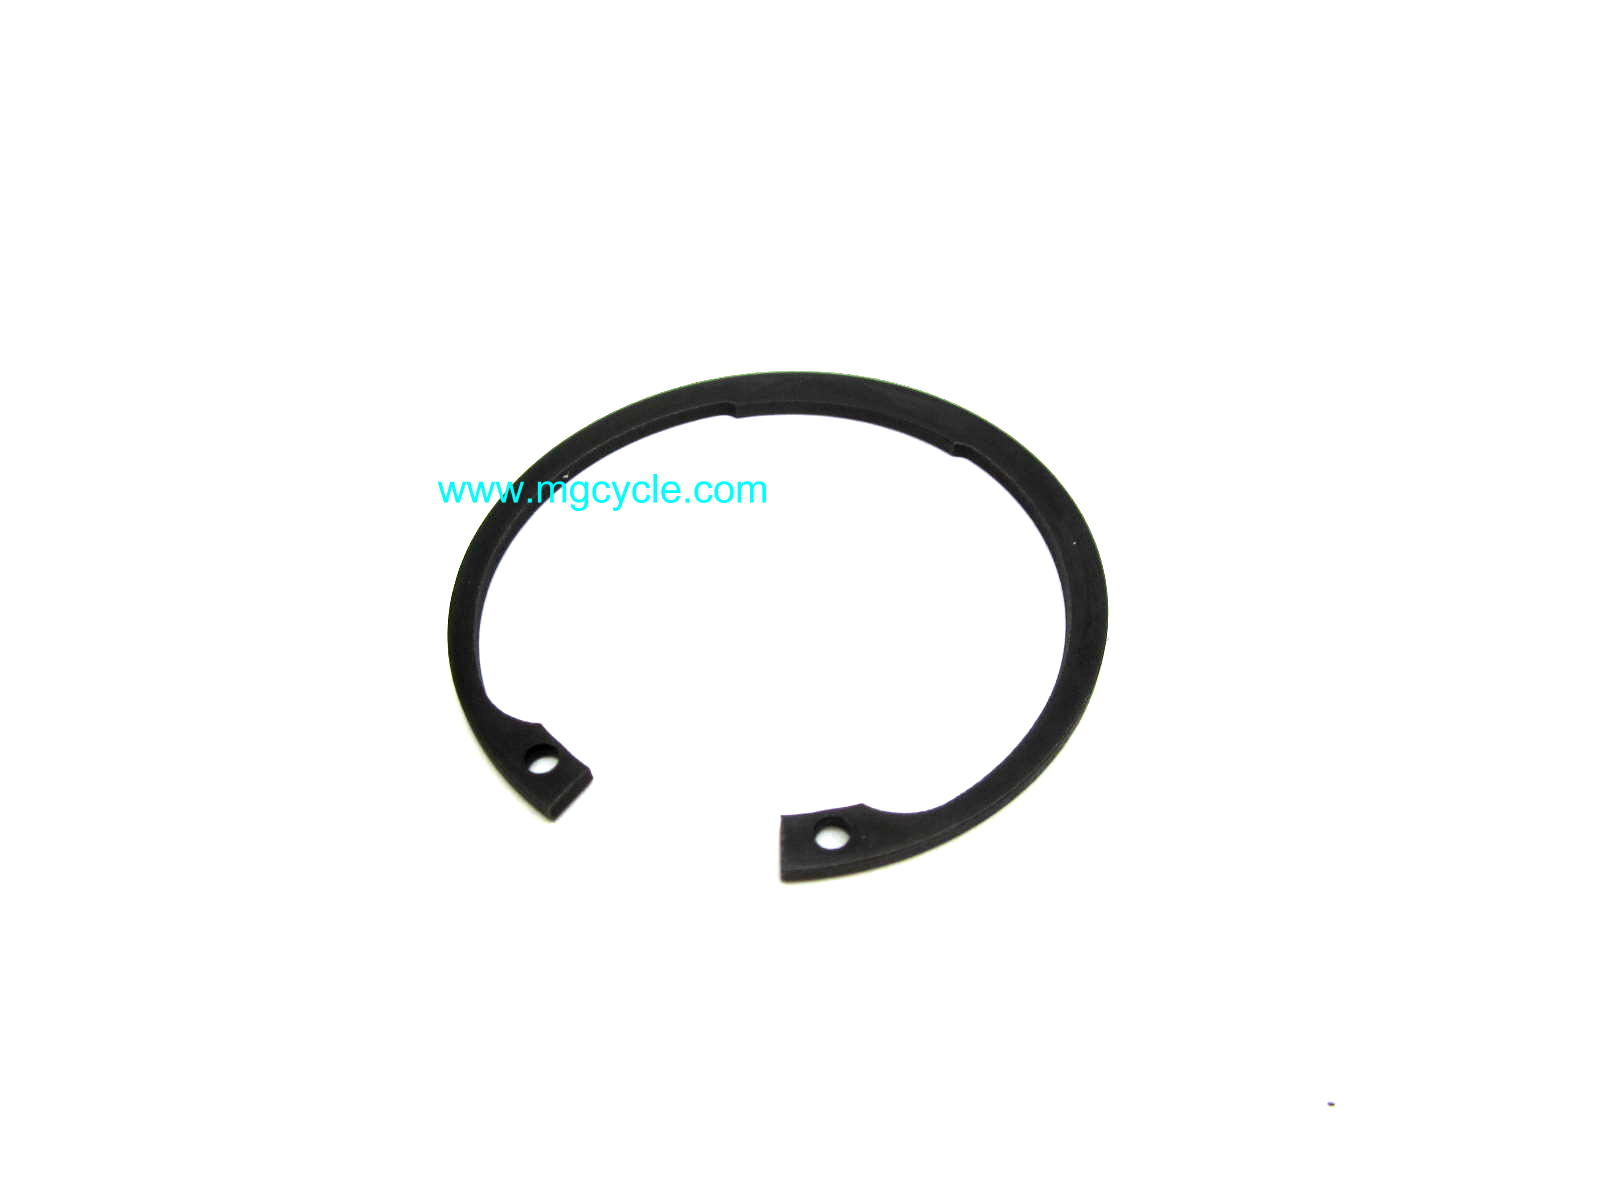 Snap ring, circlip, u joint carrier bearing, rear disk brake